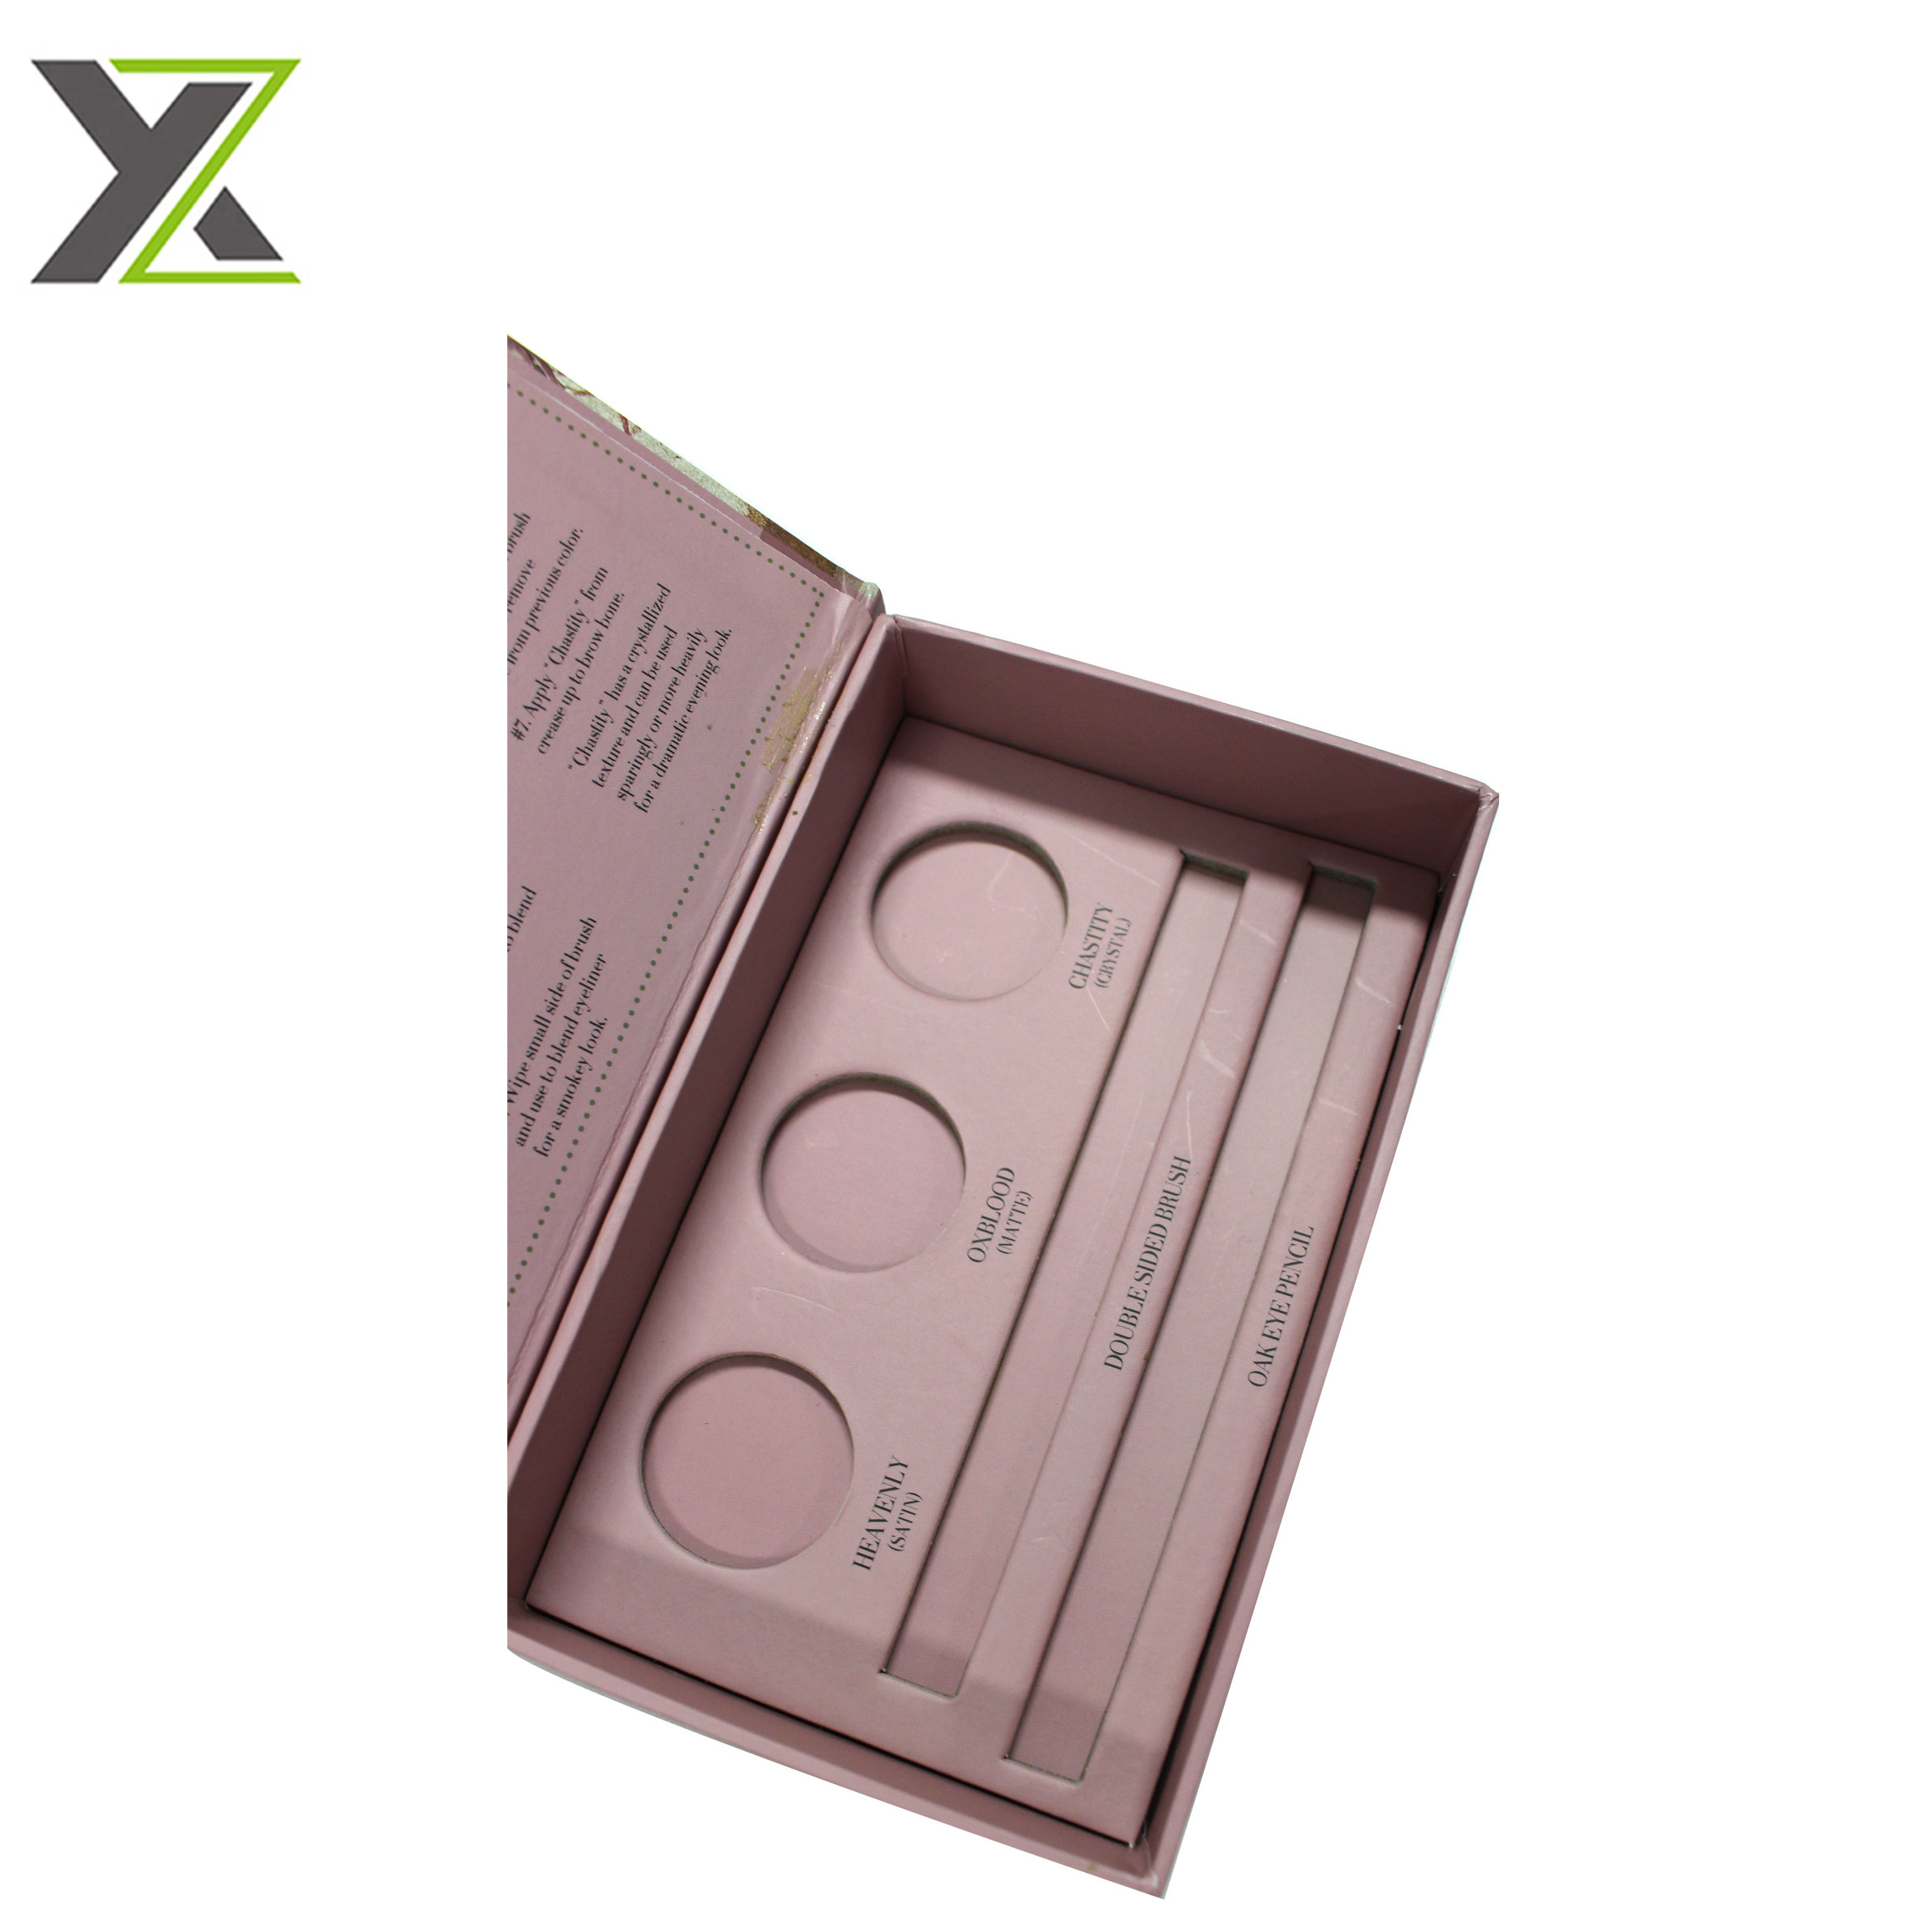 Customized cosmetic eye shadow pencil set cardboard boxes with insert